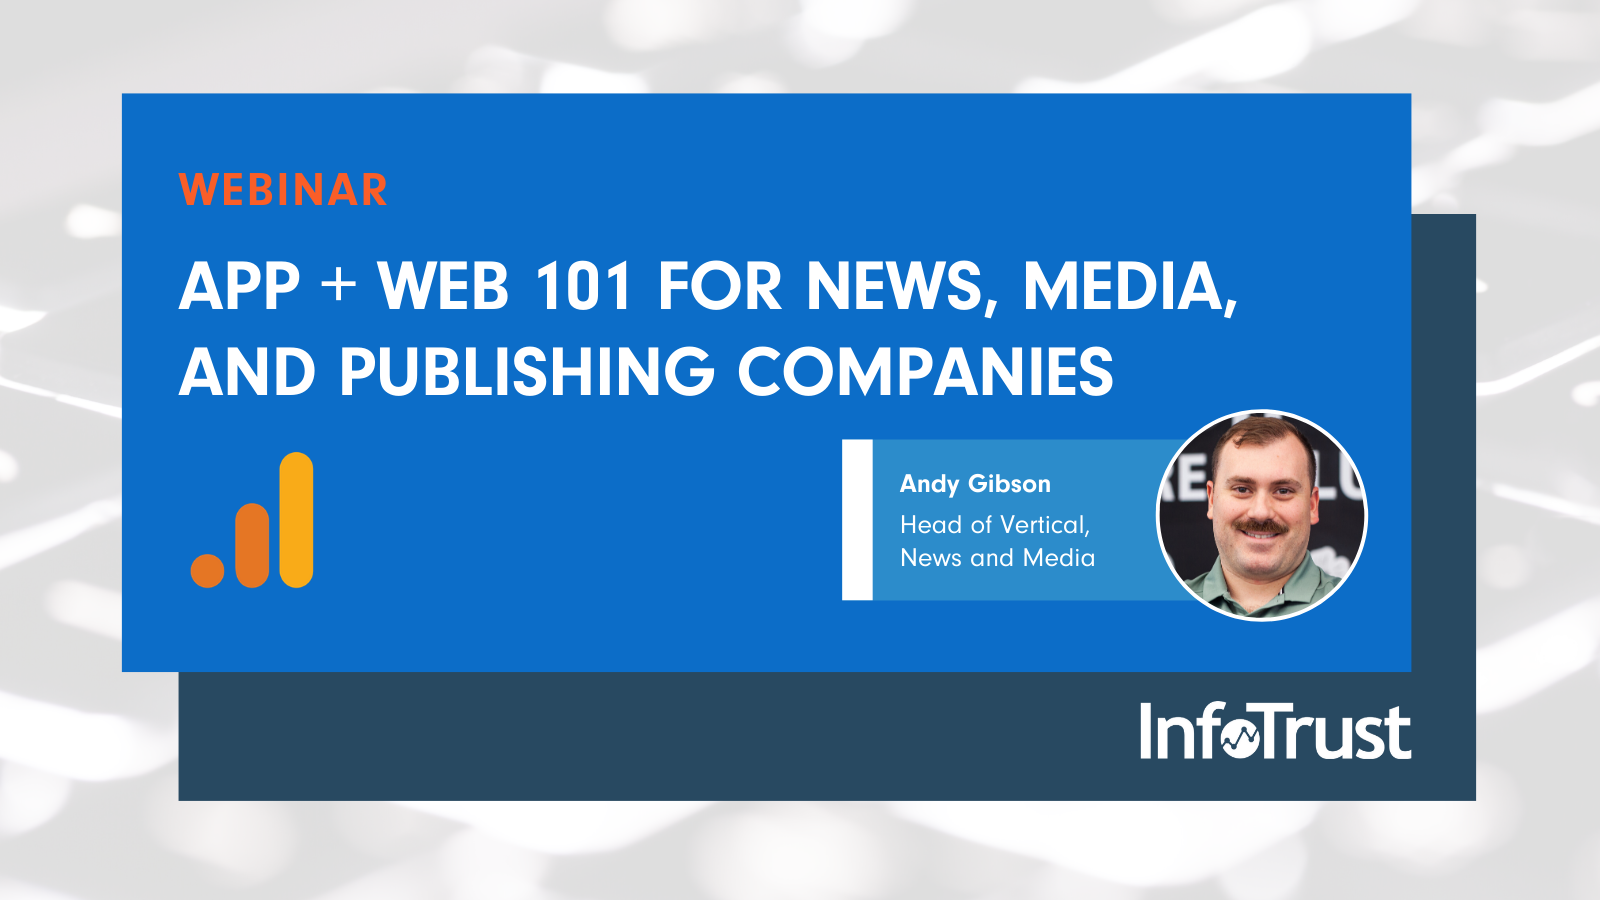 App + Web 101 for News, Media, and Publishing Organizations